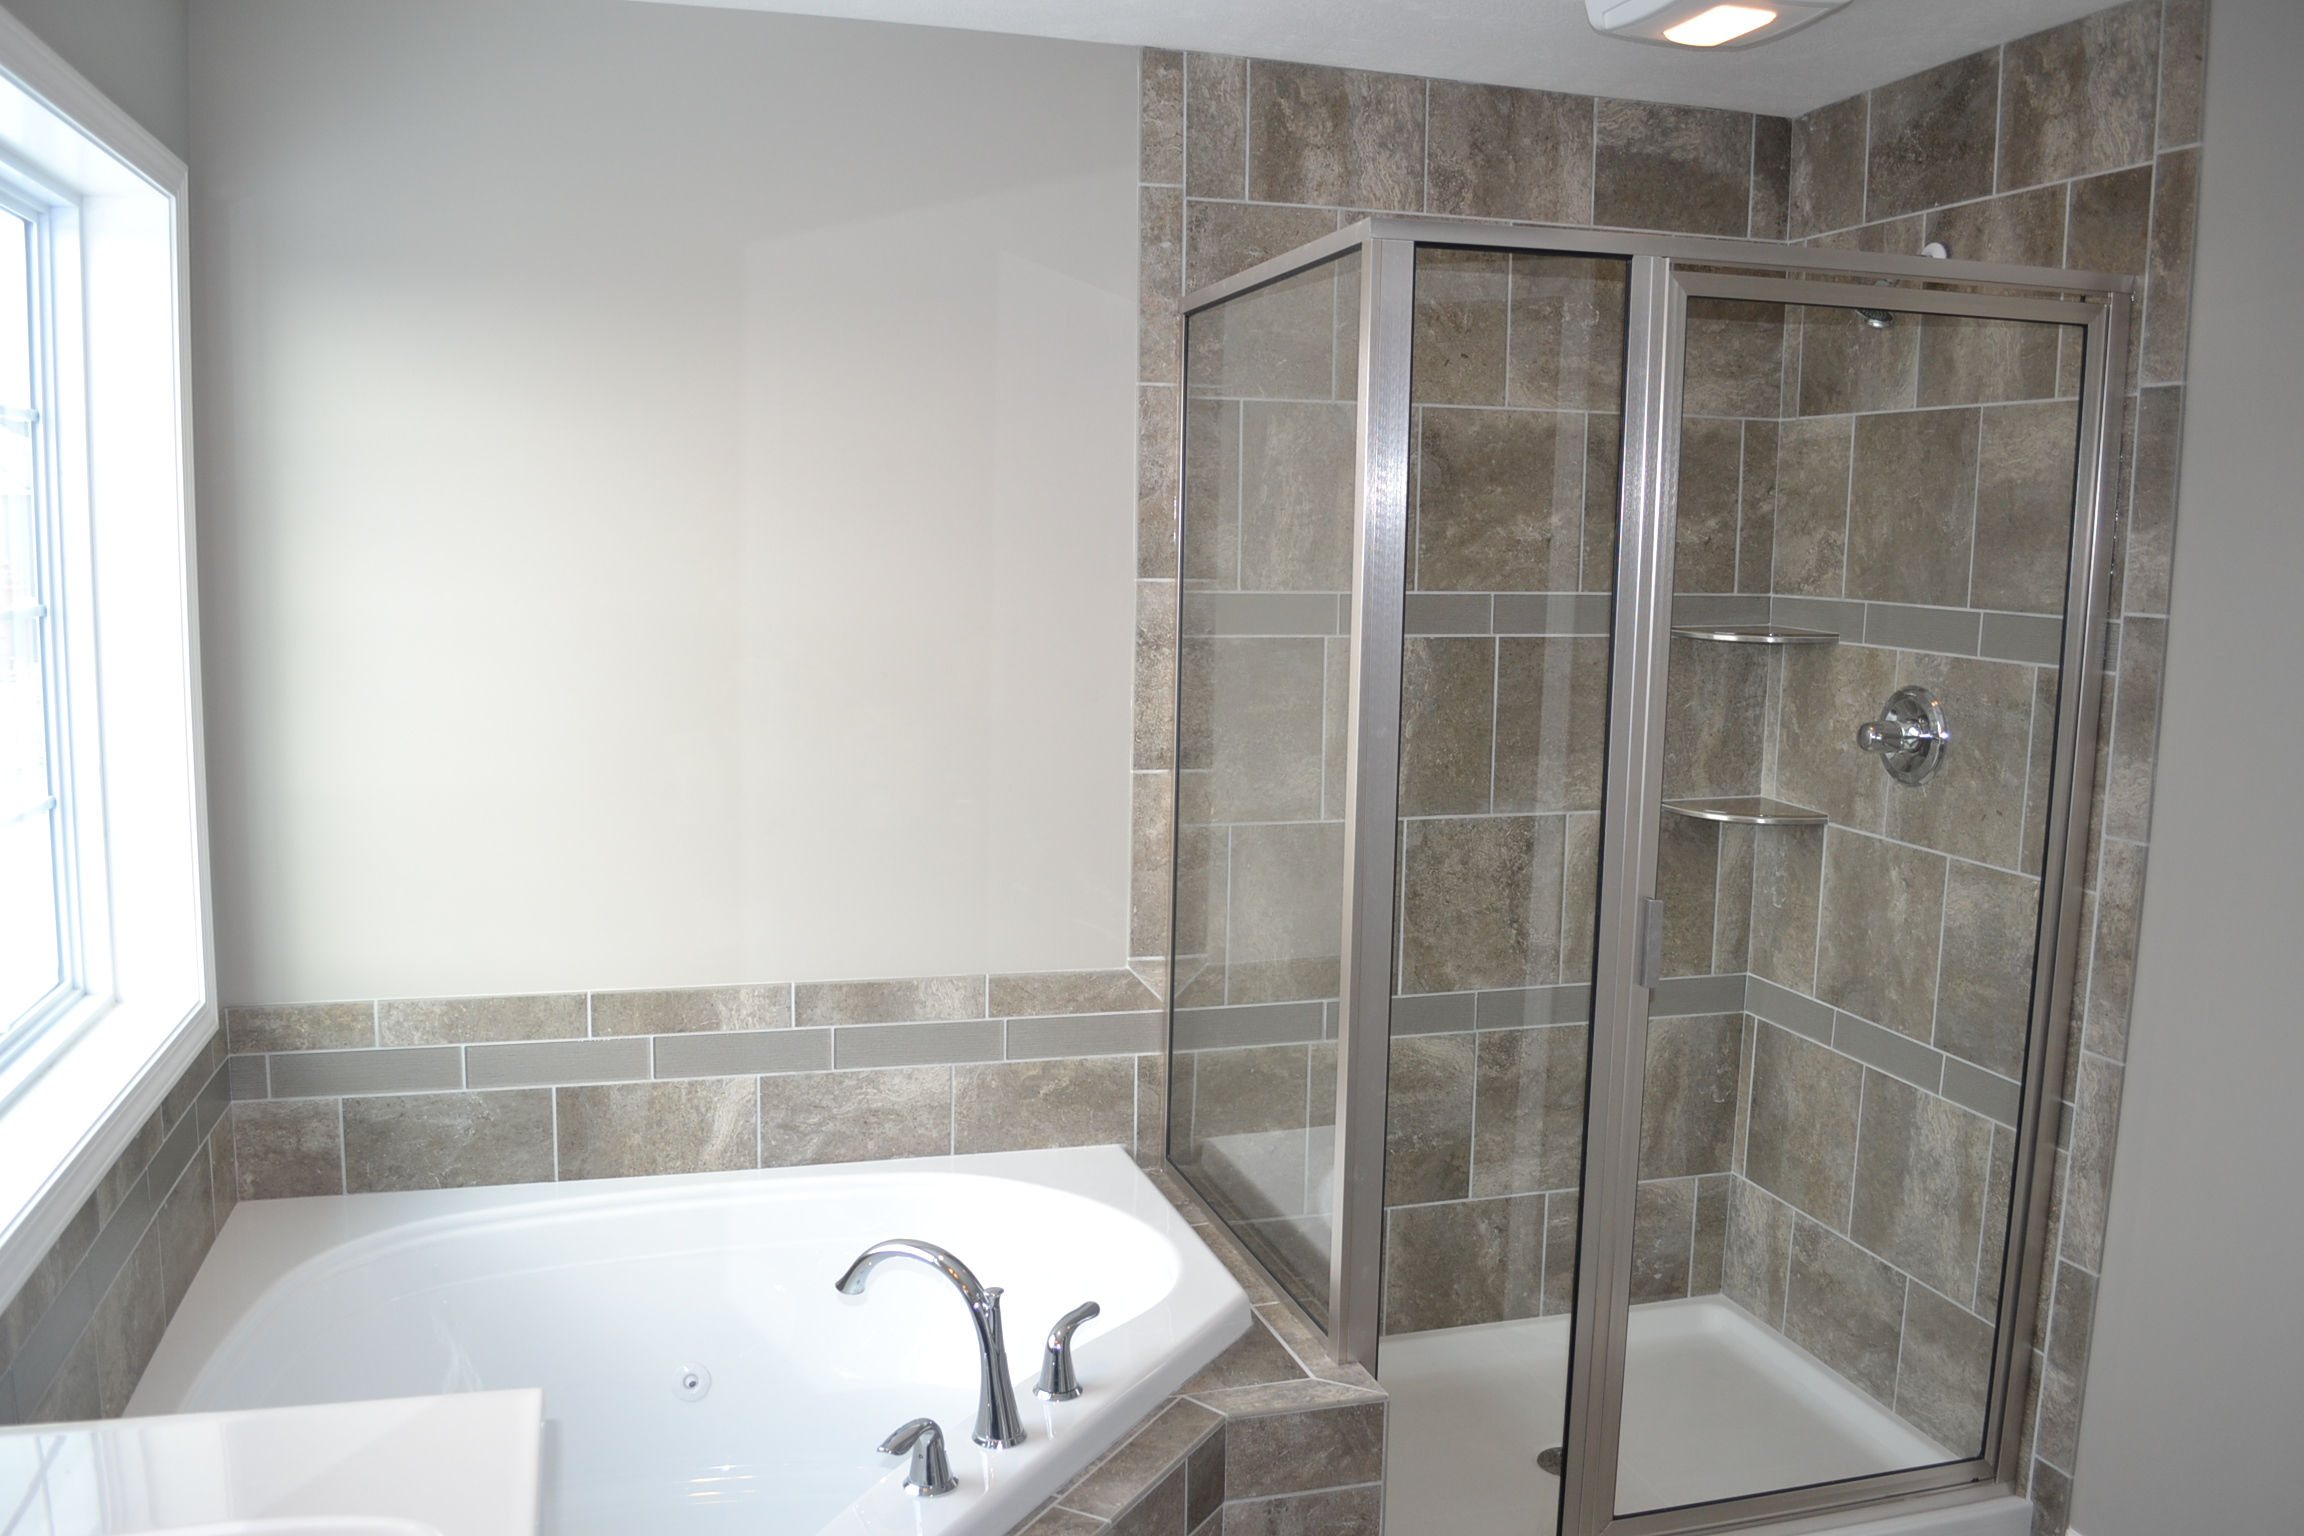 New Home in Champaign with nice bathroom